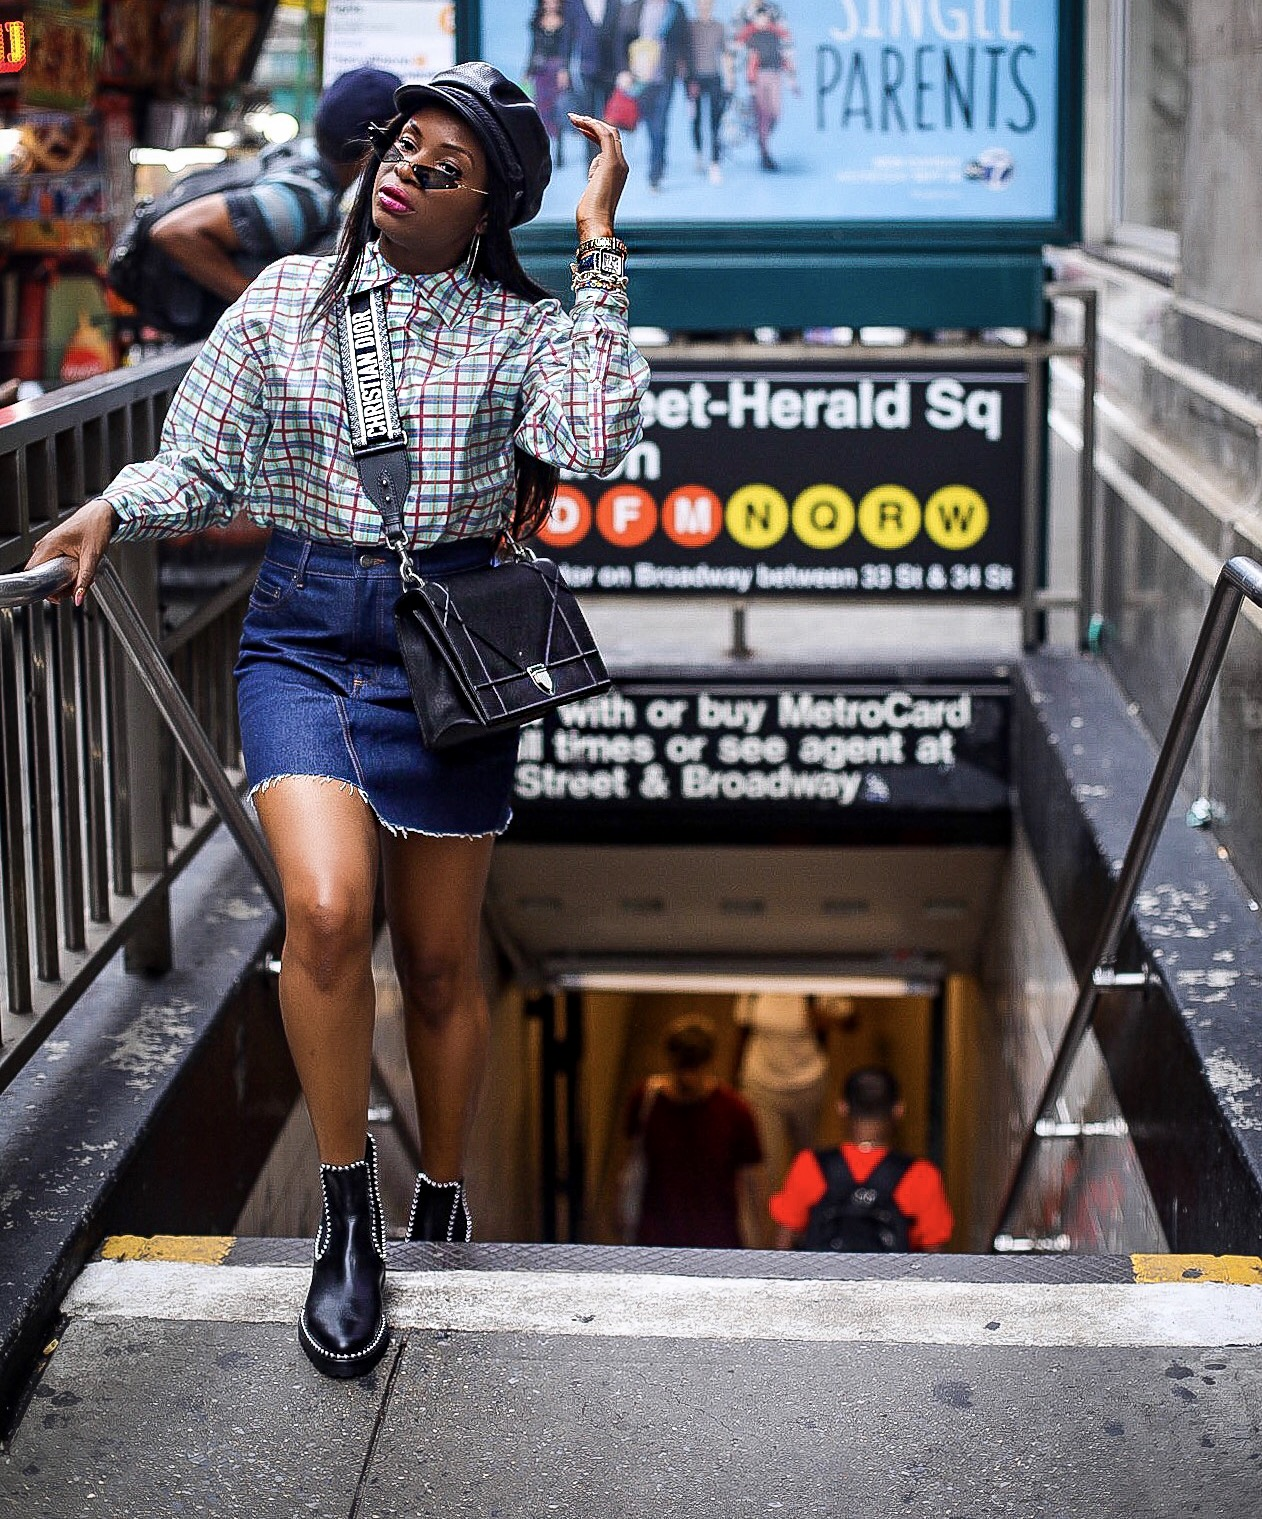 Atlanta fashion blogger Monica Awe-Etuk wearing Alexander Wang biker books, Dior saddle bag, black cap, plaid shirt and denim mini skirt.